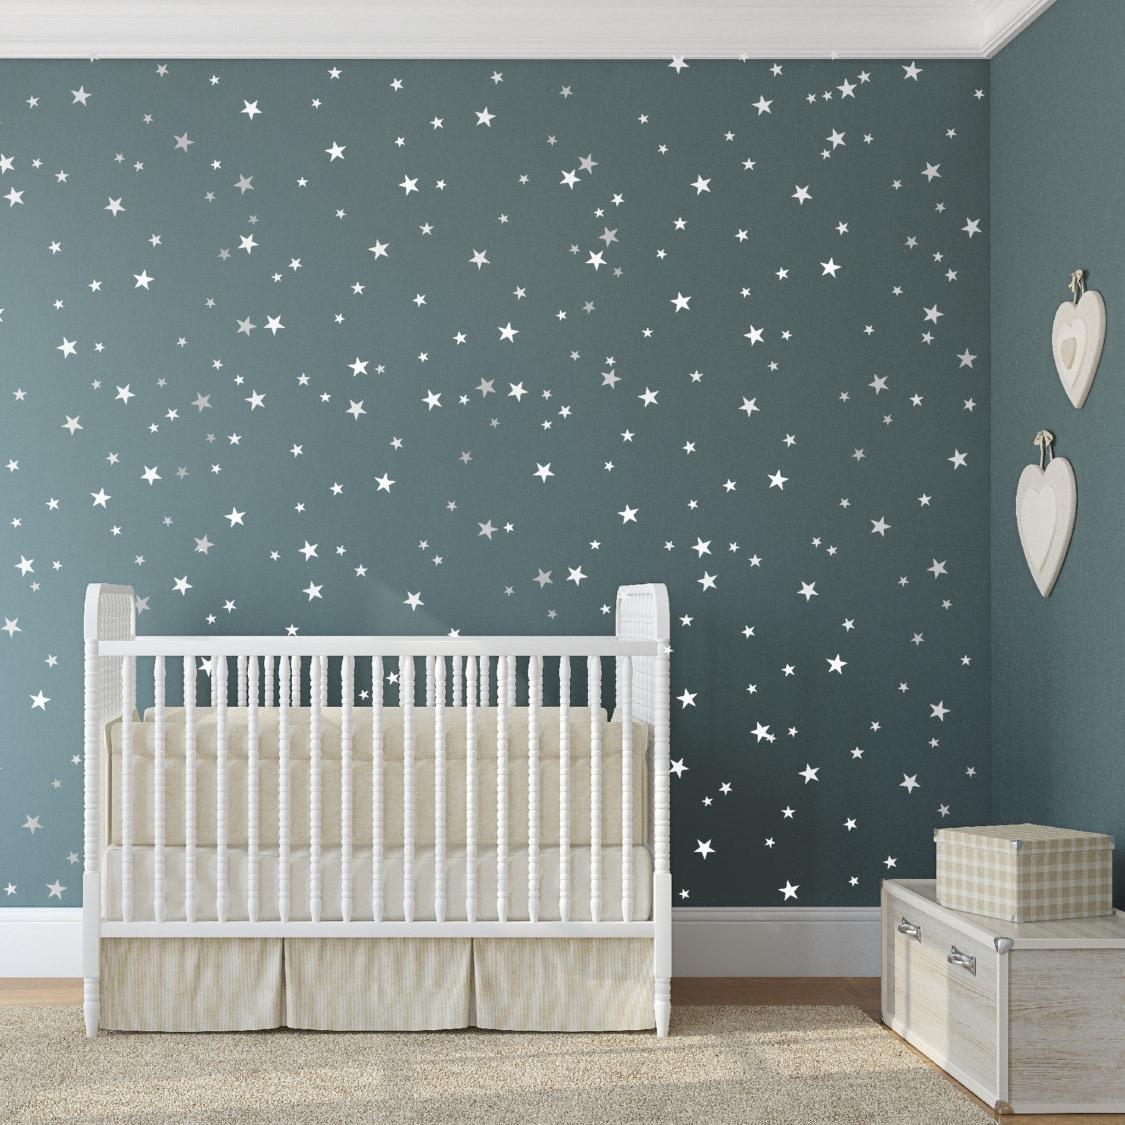 Merveilleux Bedroom Stars Wall Decals. Zoom